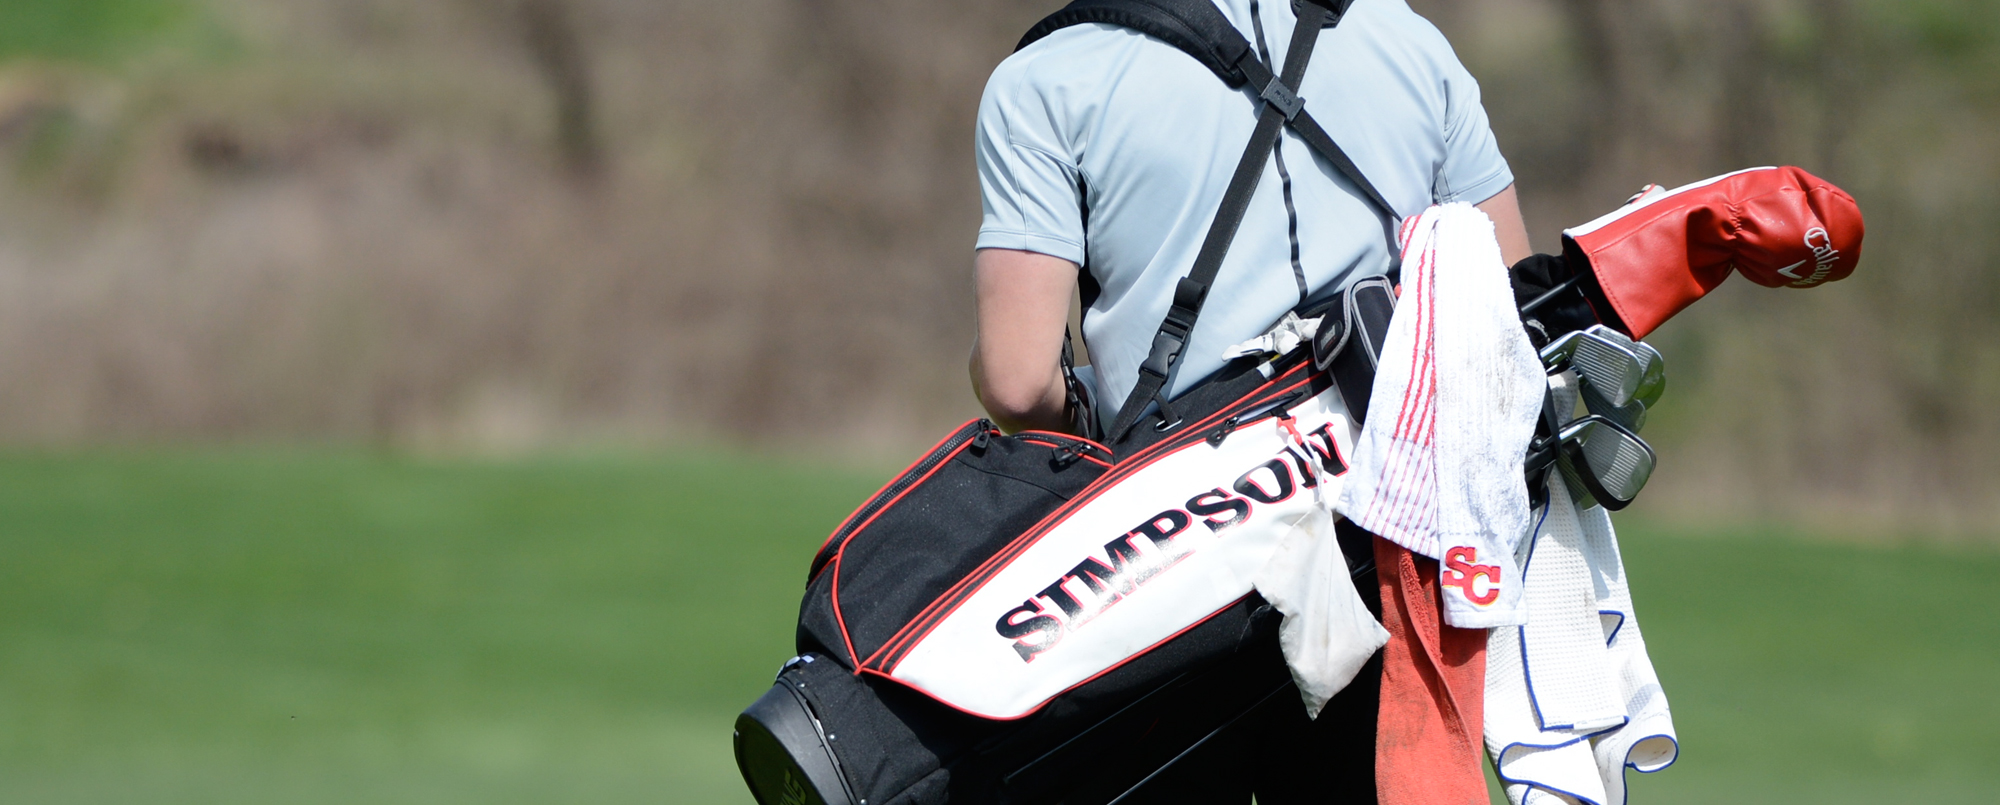 Storm tied for 18th after first day at Midwest Region Classic